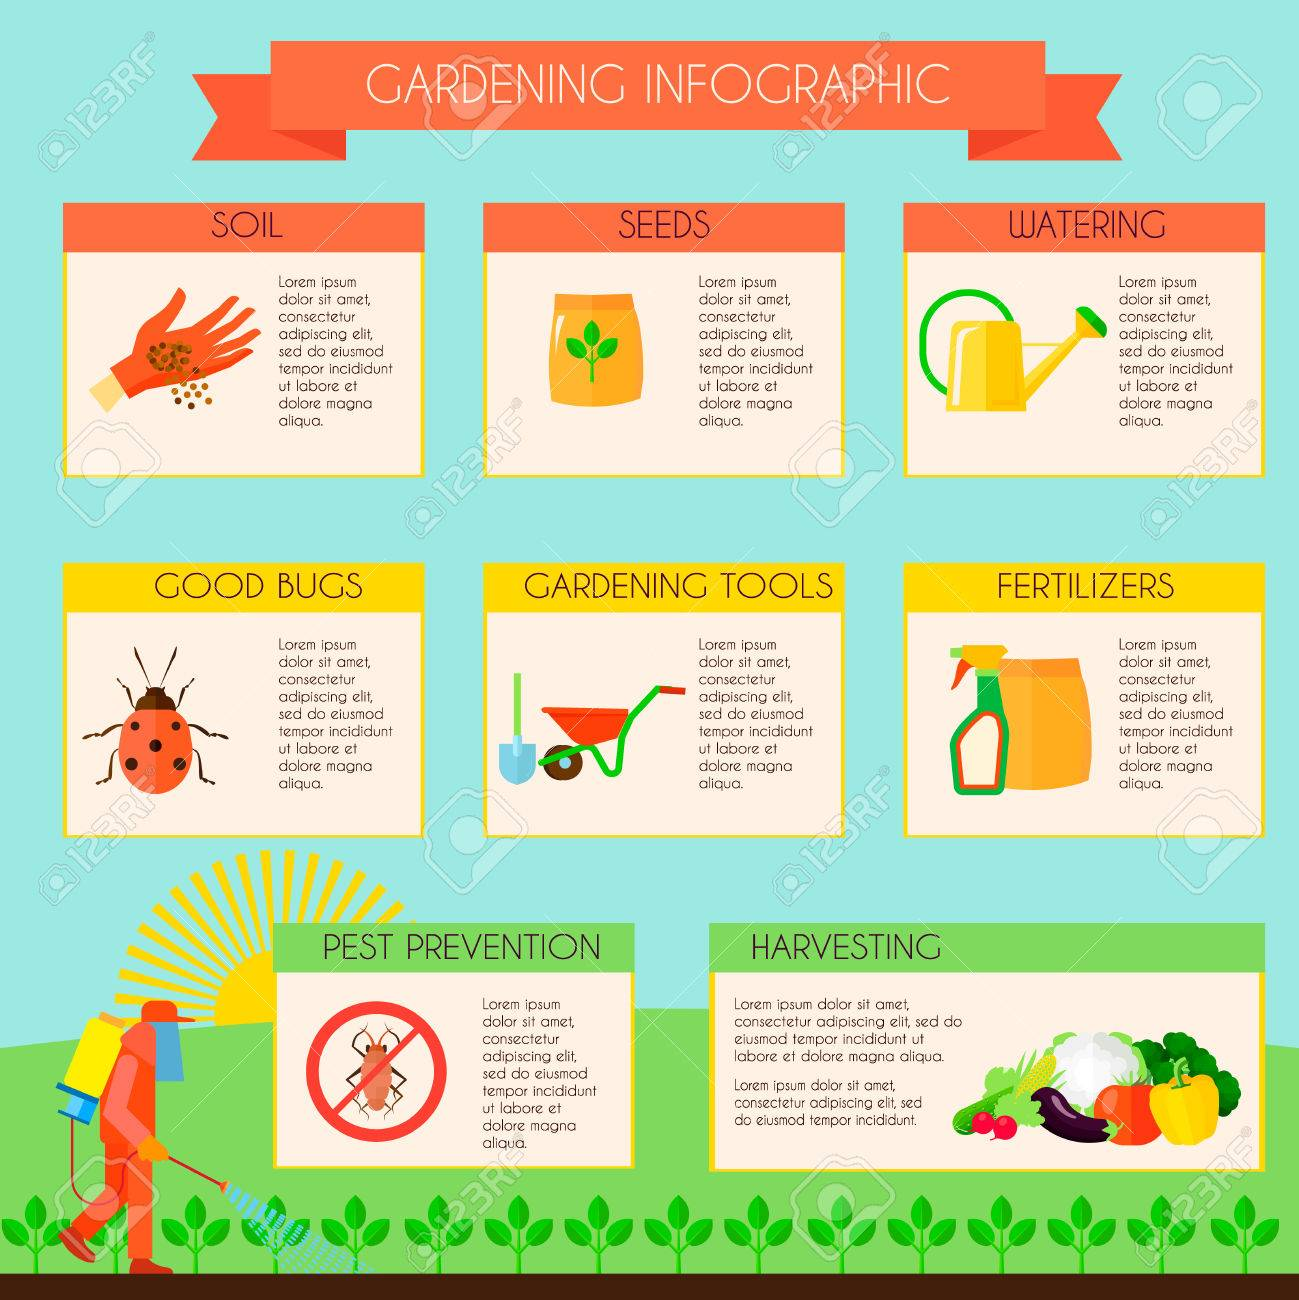 65127570-gardening-infographic-set-with-